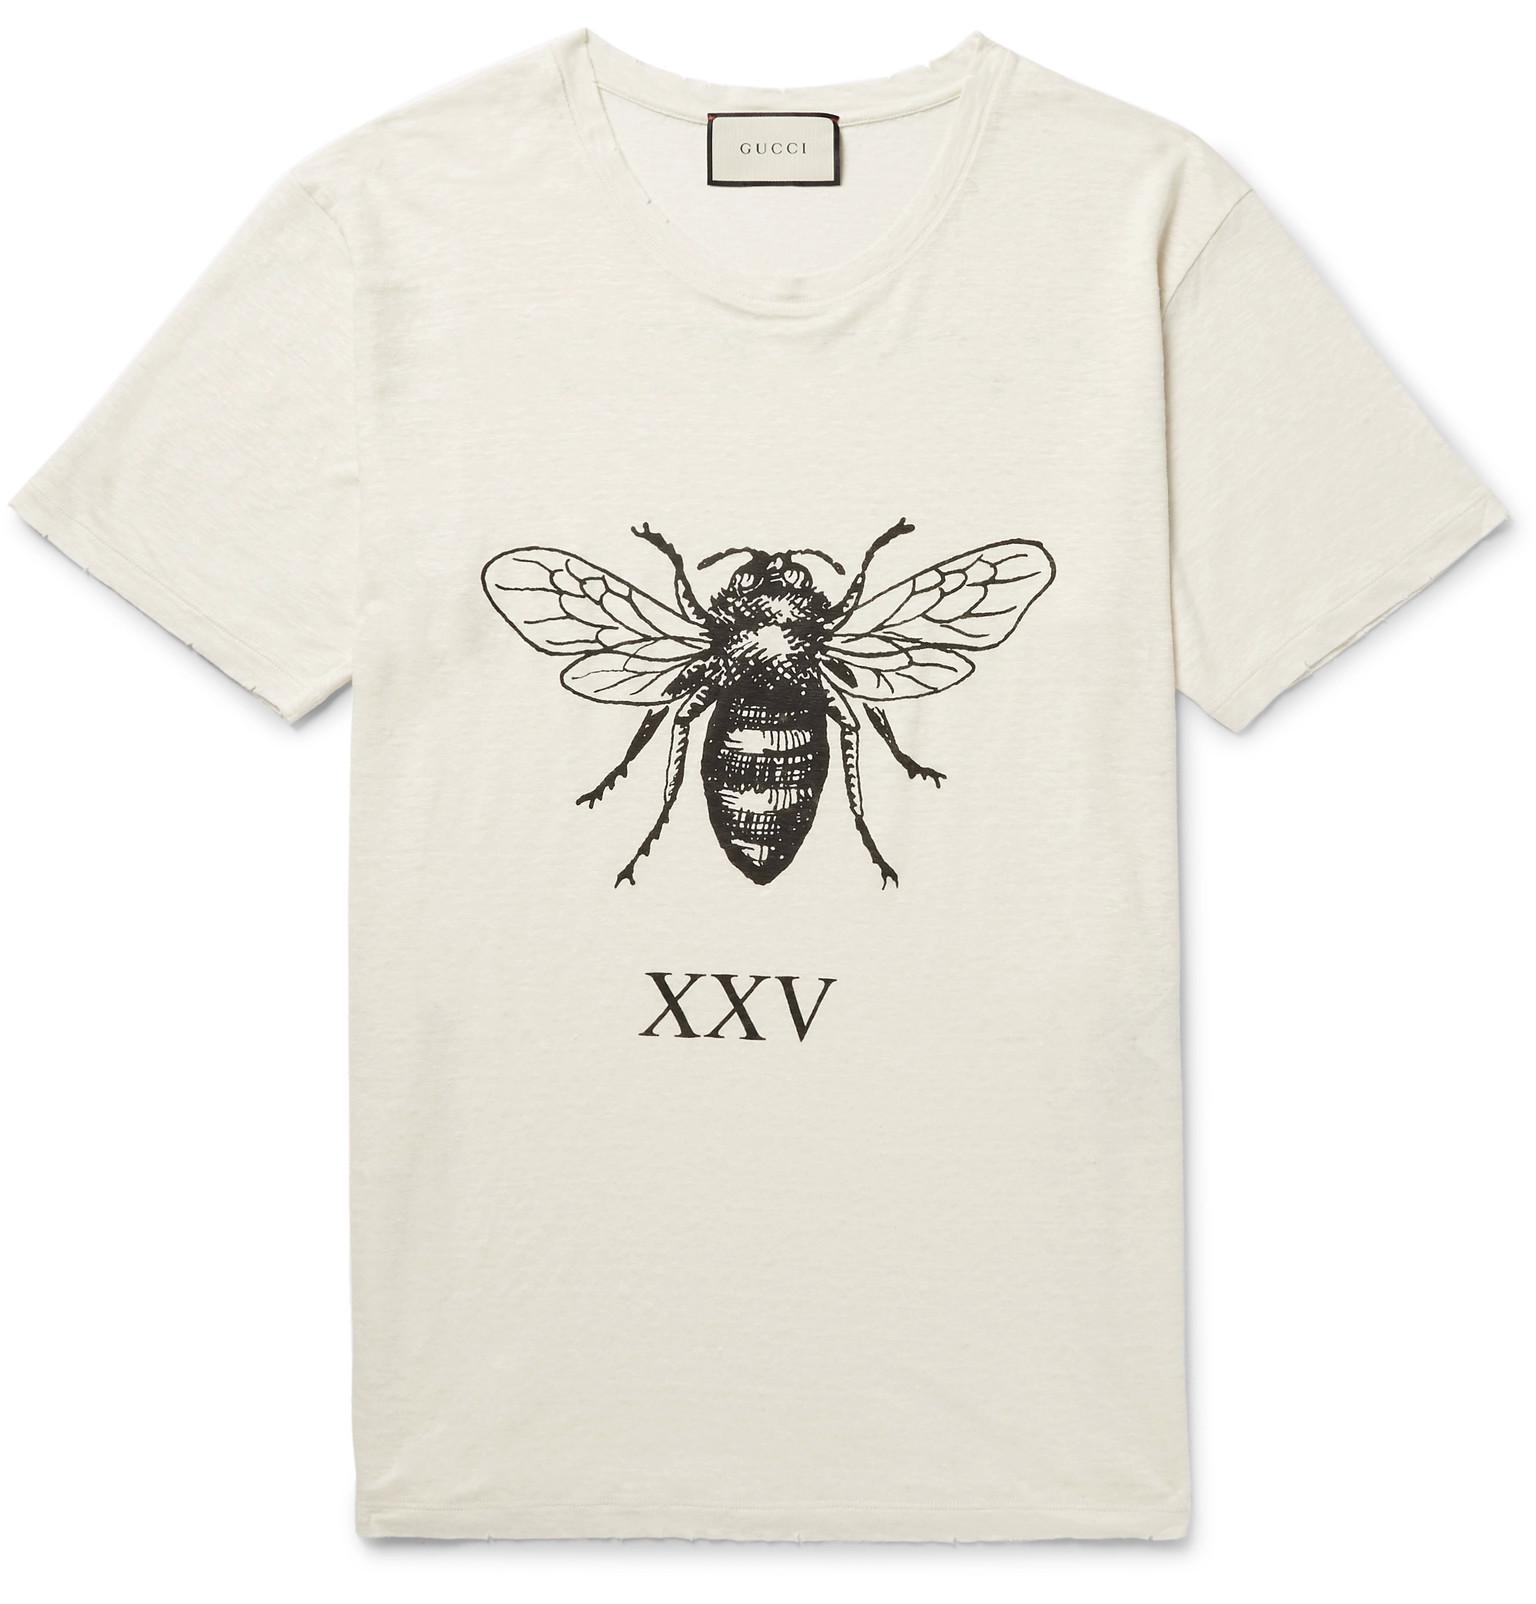 04829bee Gucci Distressed Printed Slub Linen T-shirt in White for Men - Lyst